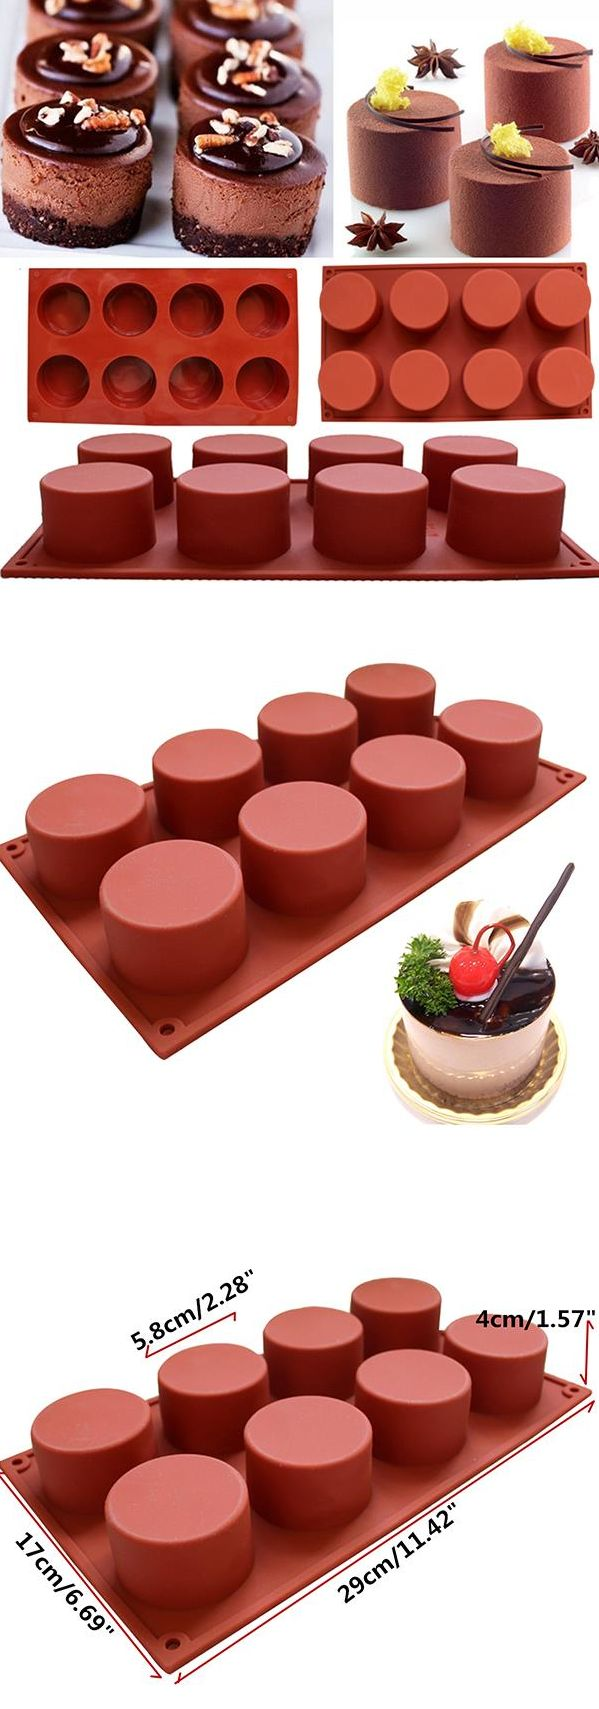 US$4.89 DIY Silicone Cupcake Mold Muffin Chocolate Cake Candy Cookie Baking Mould Pan Tools